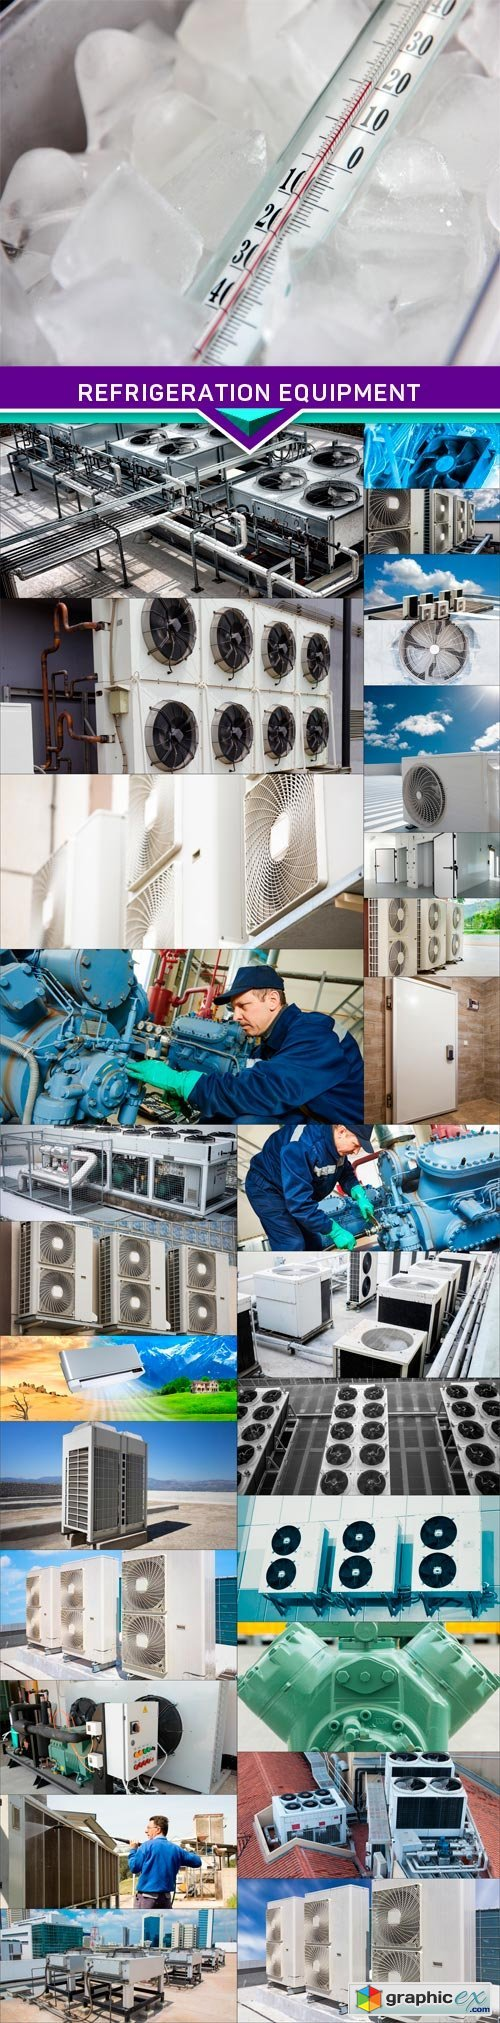 Industrial refrigeration equipment and air conditioning systems 28X JPEG